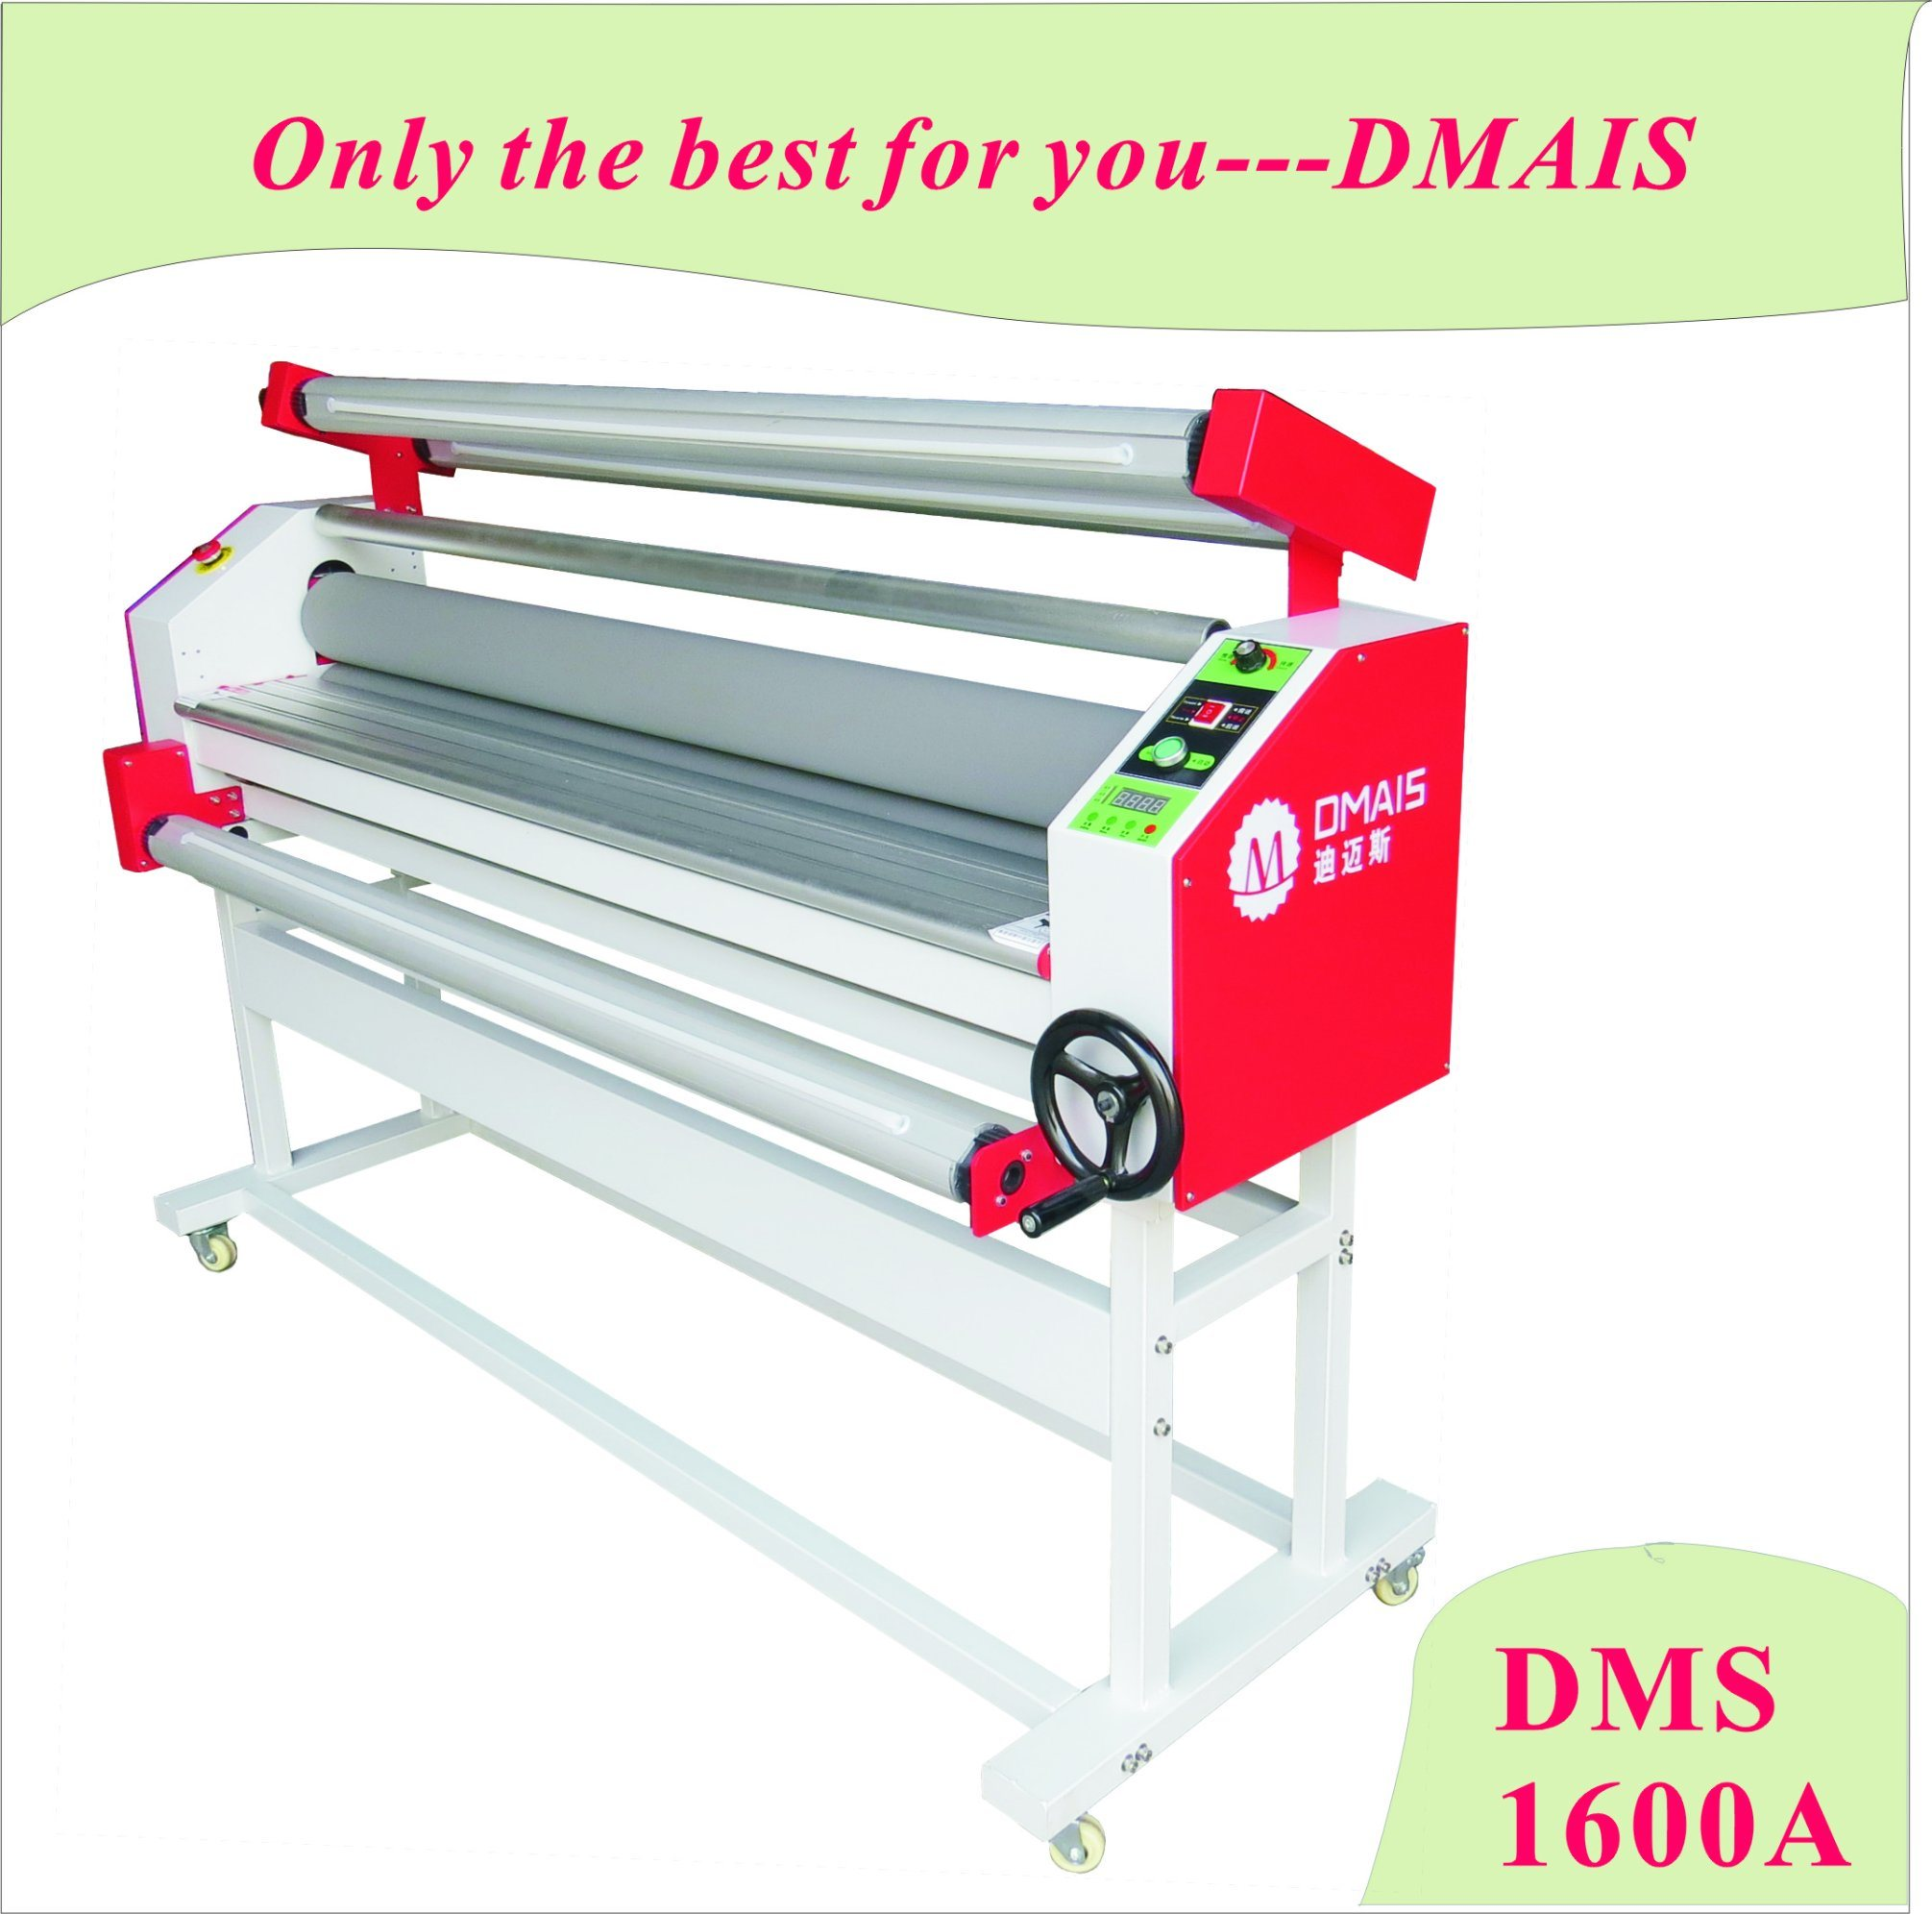 DMS-1600A Laminator for Signage & Graphic